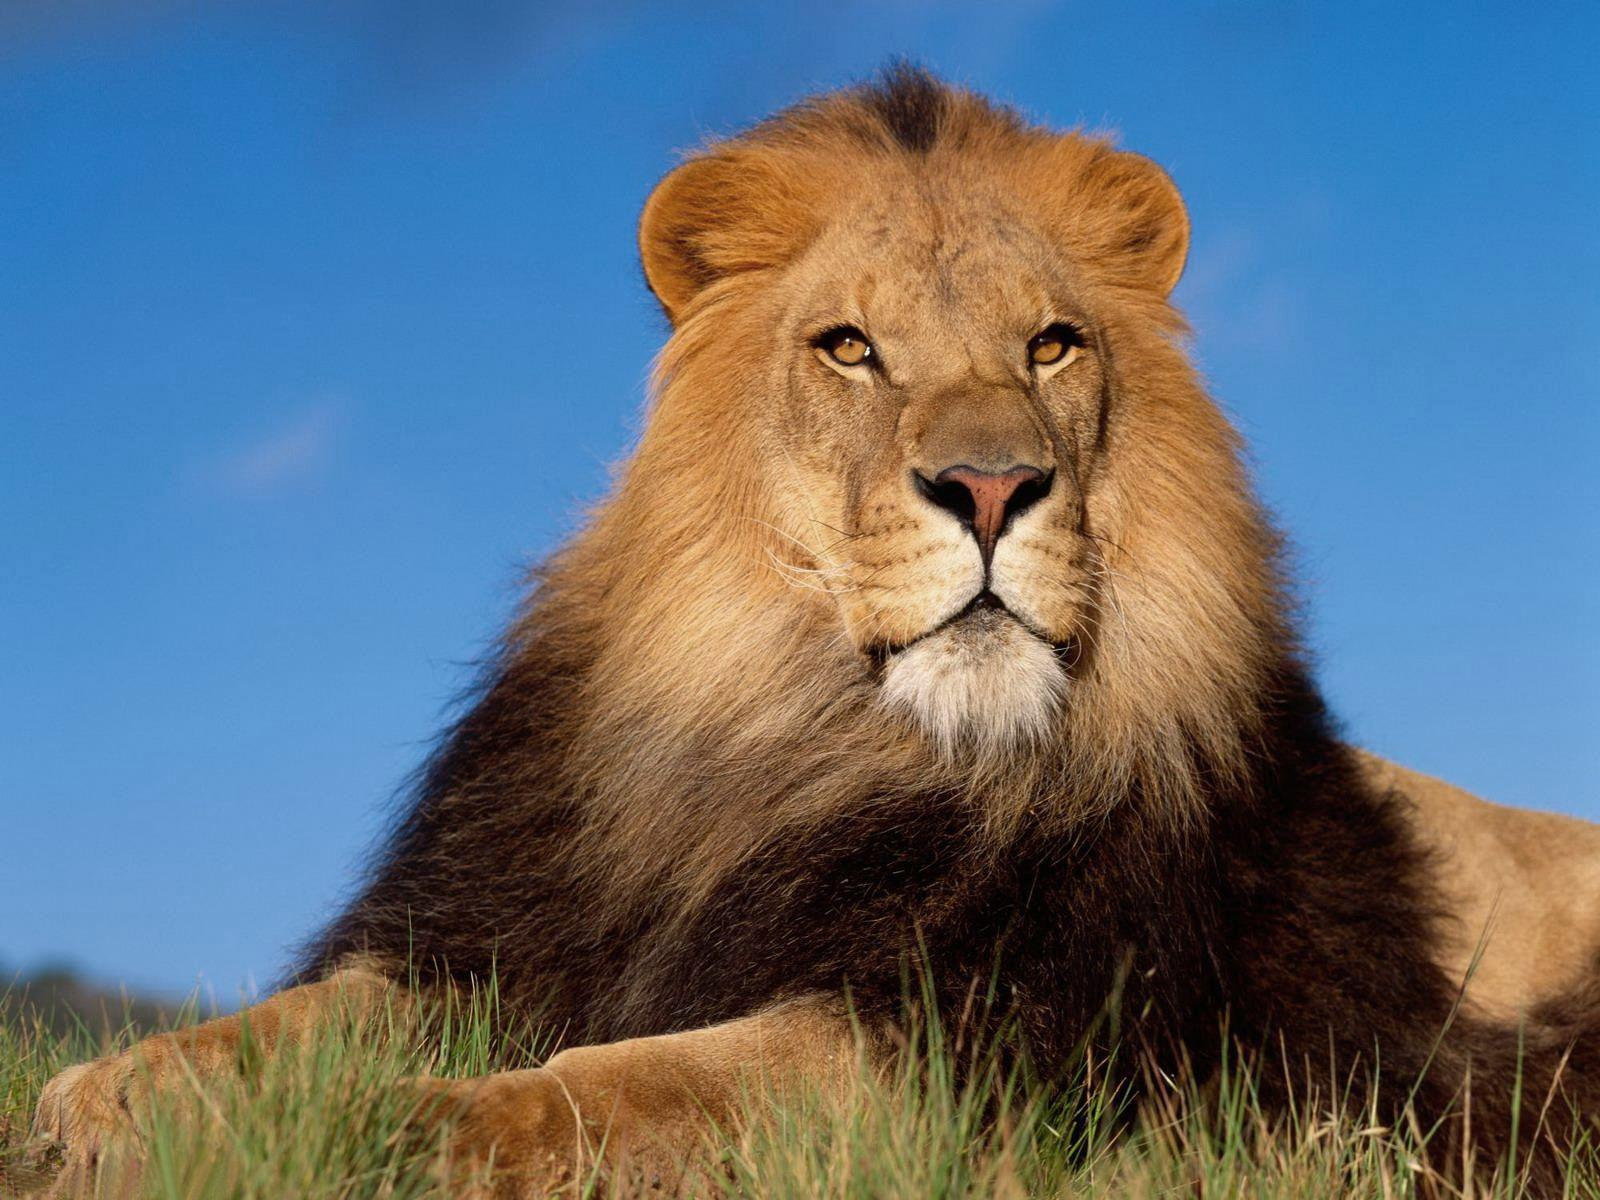 HD Wallpapers Old Lion Animals - Wallpapers Points